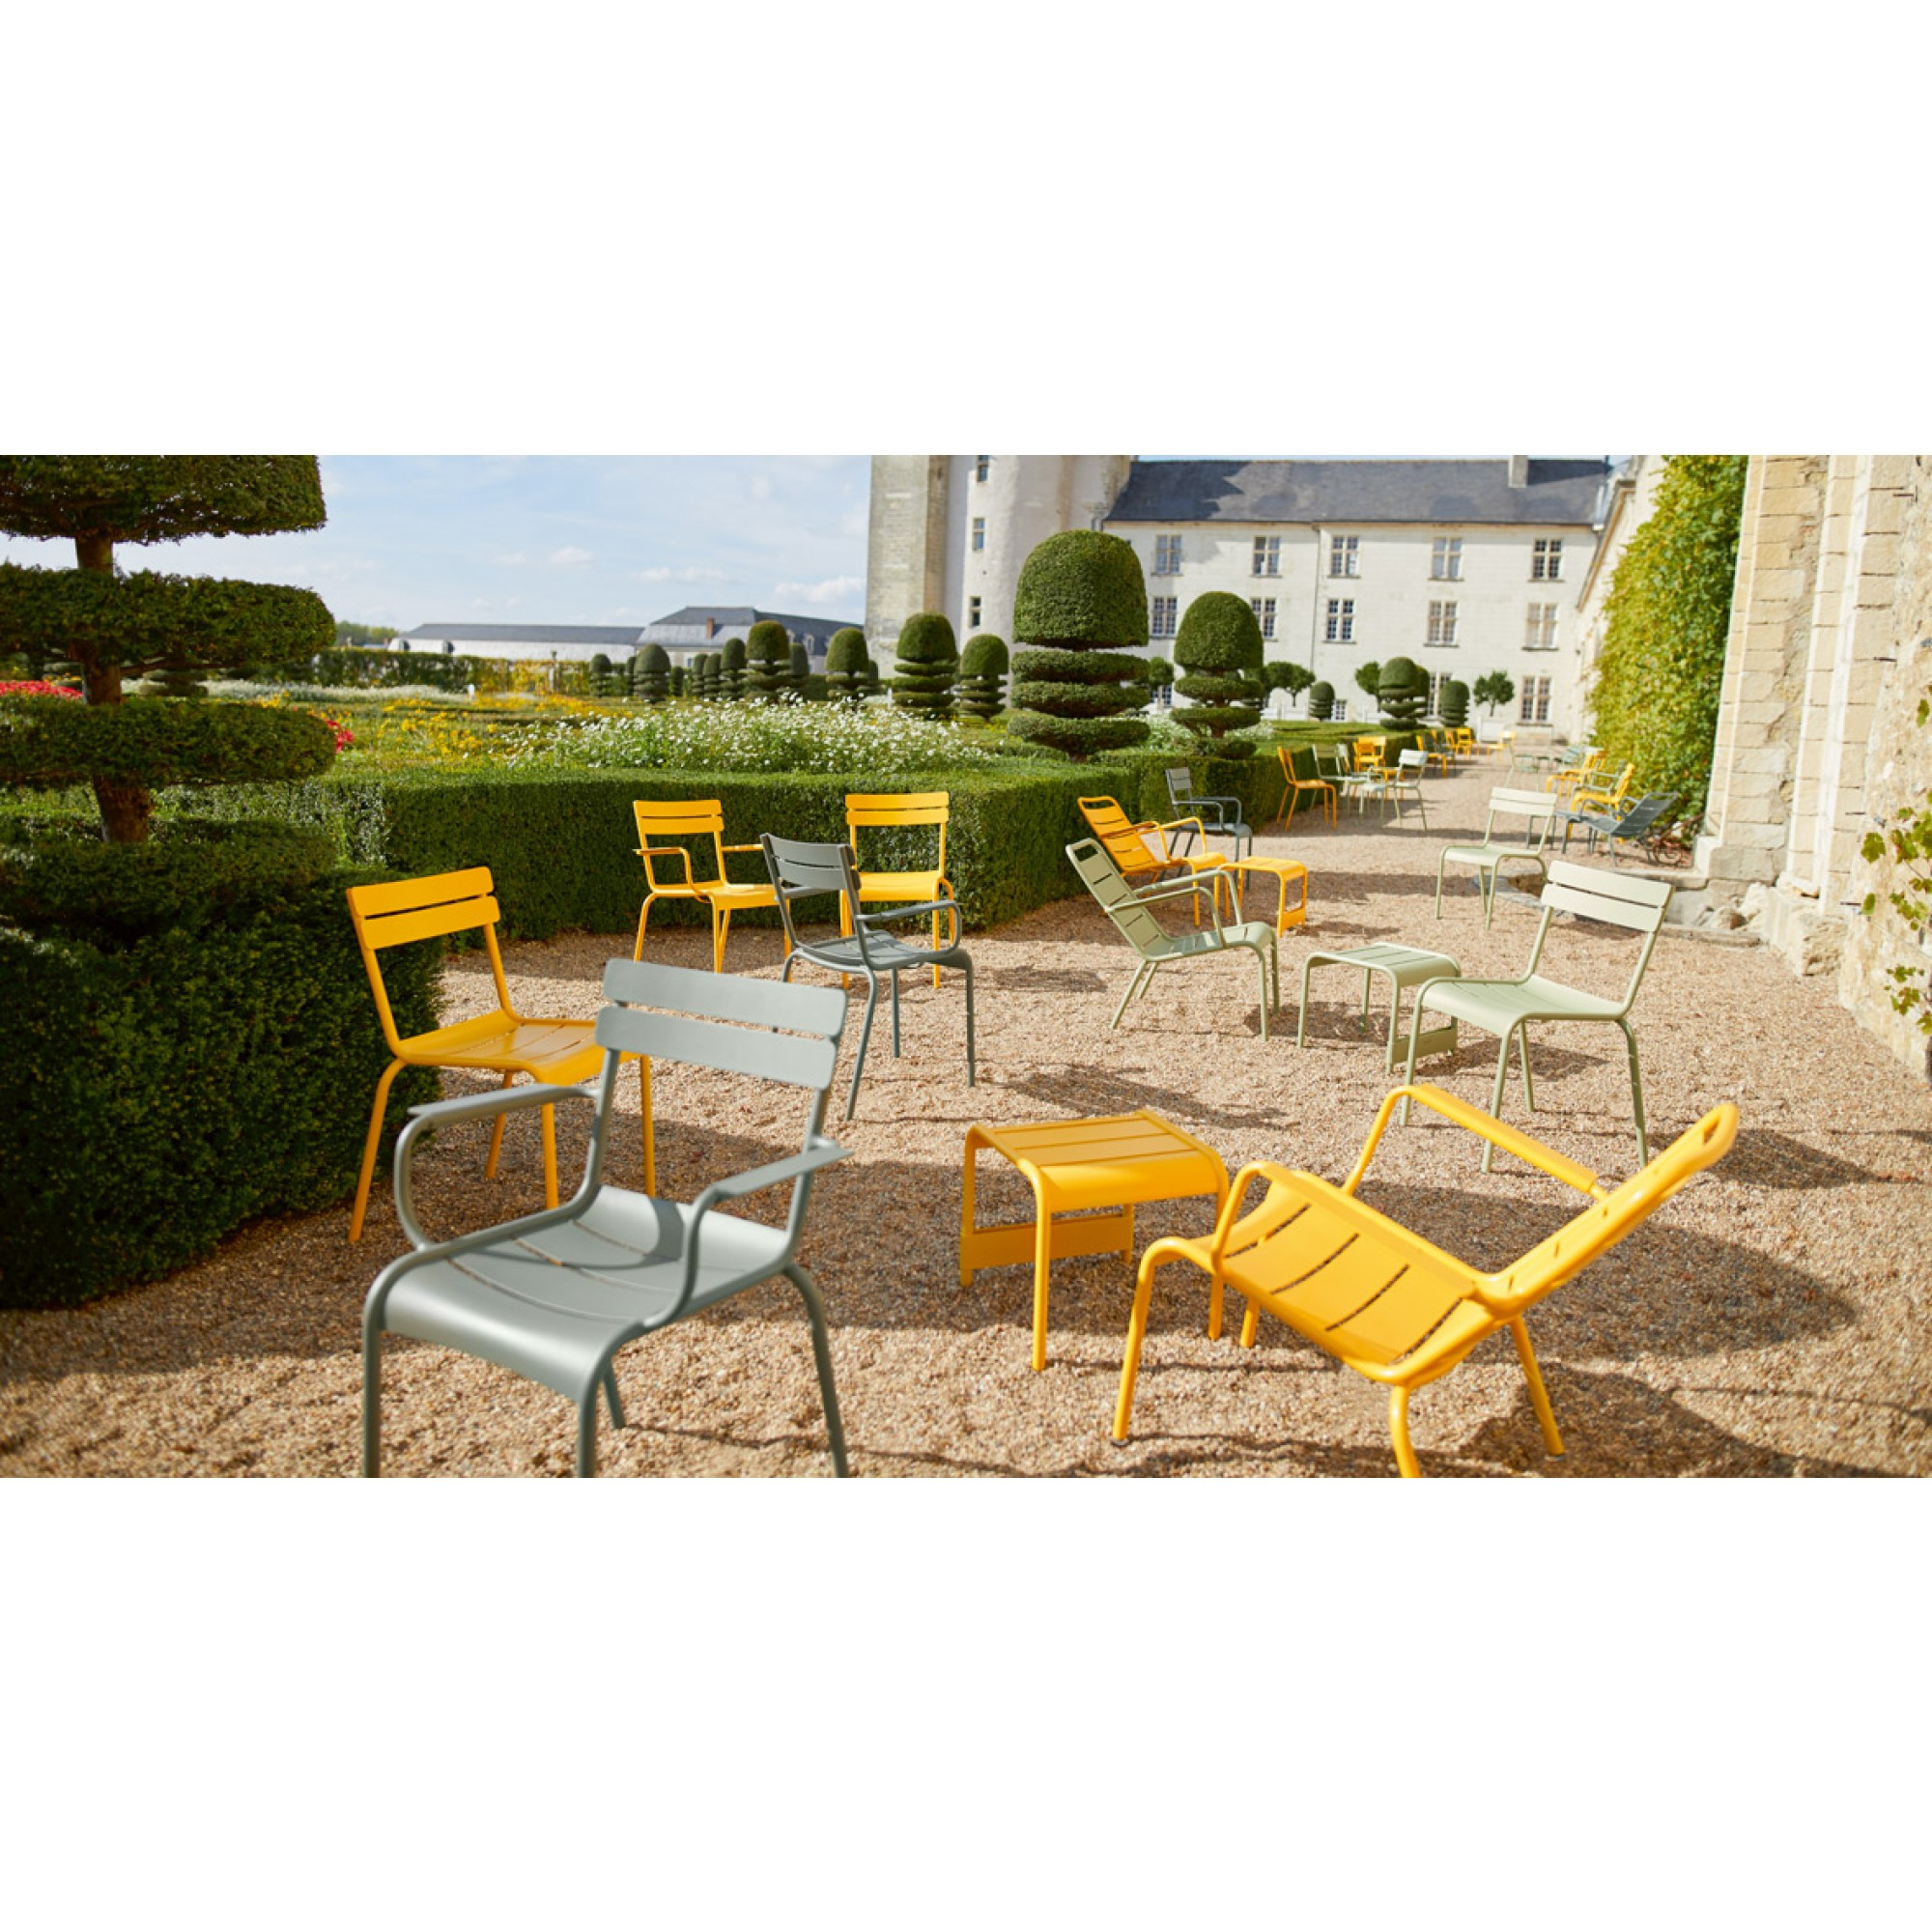 Luxembourg Chair | Chairs | Seats | Fermob - Masonionline pour Fermob Jardin Du Luxembourg